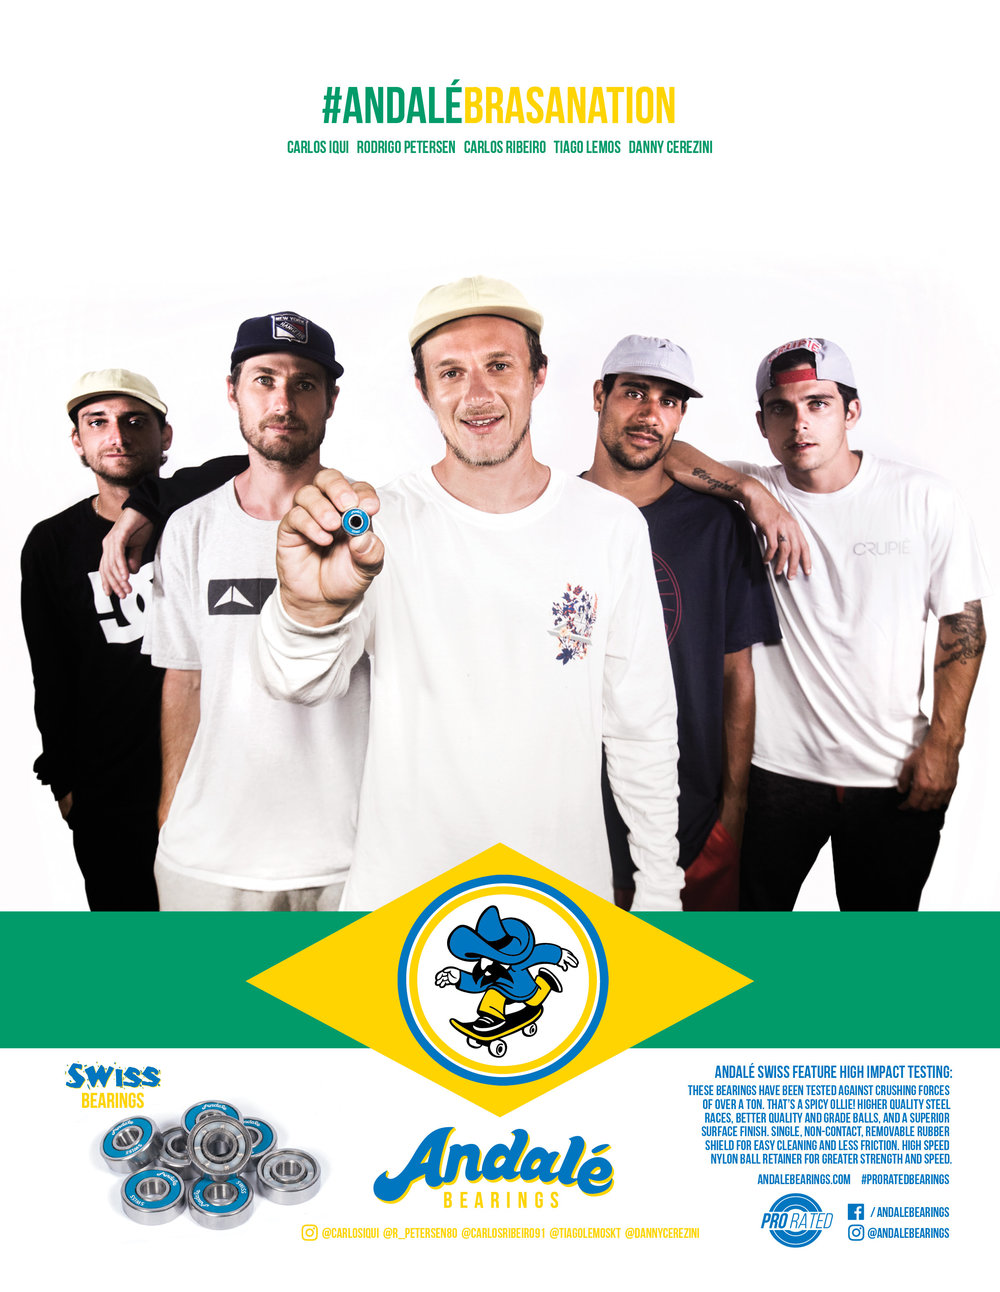 Andale Bearings Brasil Crew Brasa Nation thrasher magazine ad